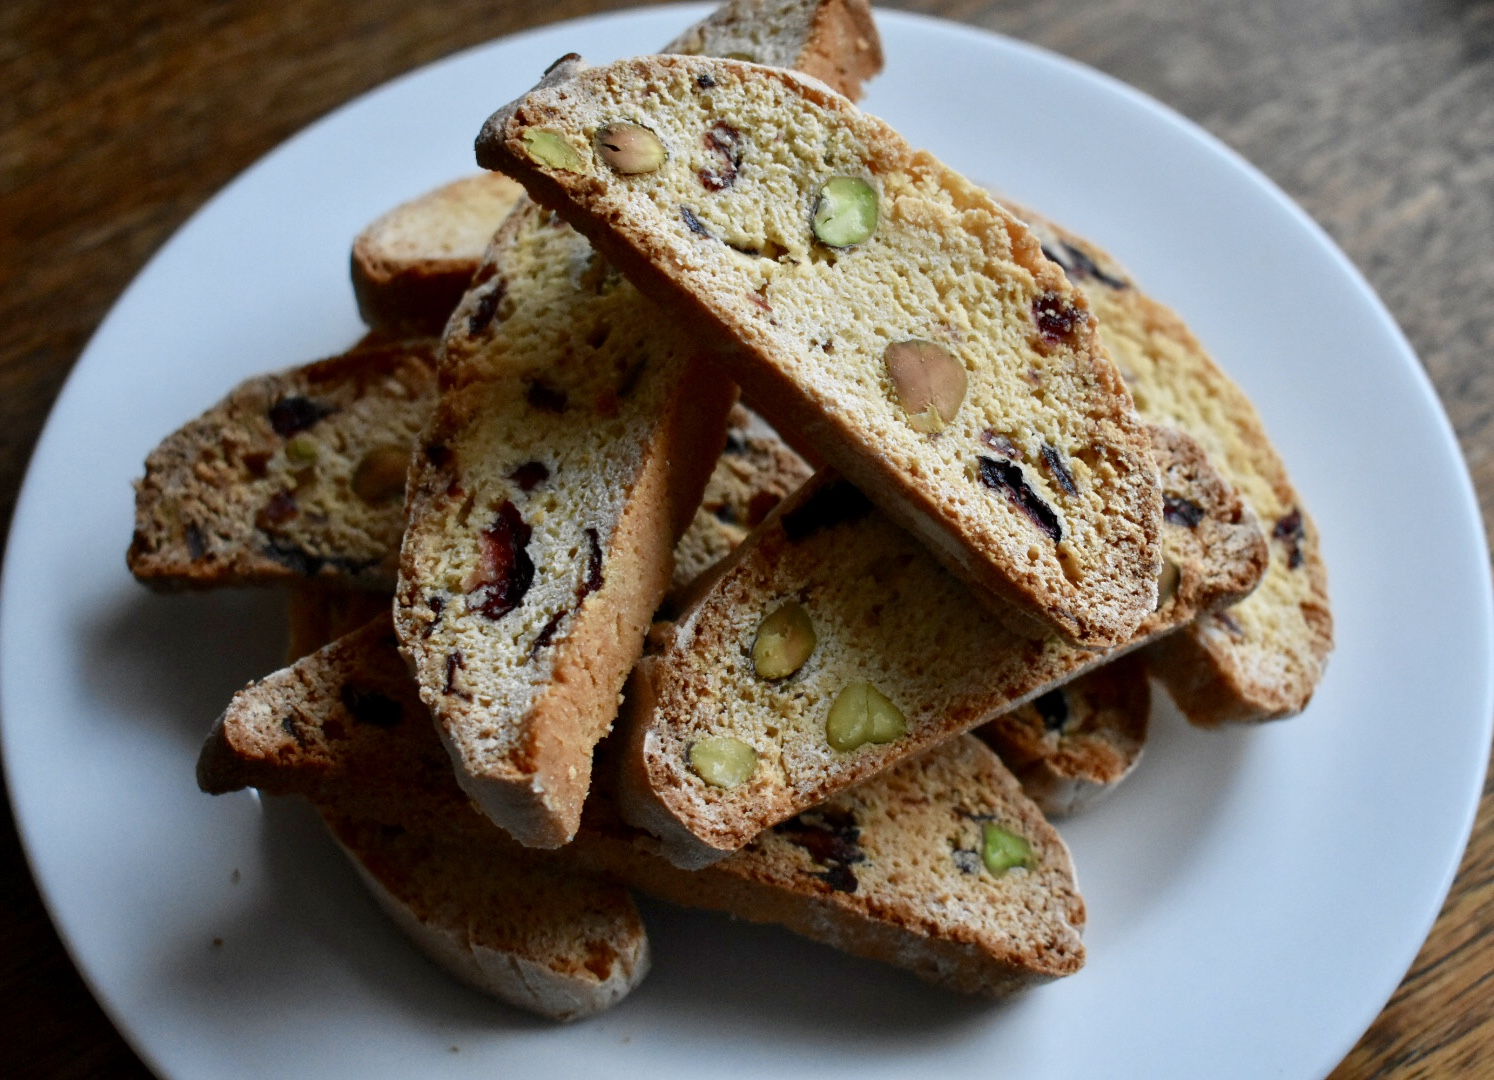 Photo of cranberry and pistachio biscotti pieces stacked on a place